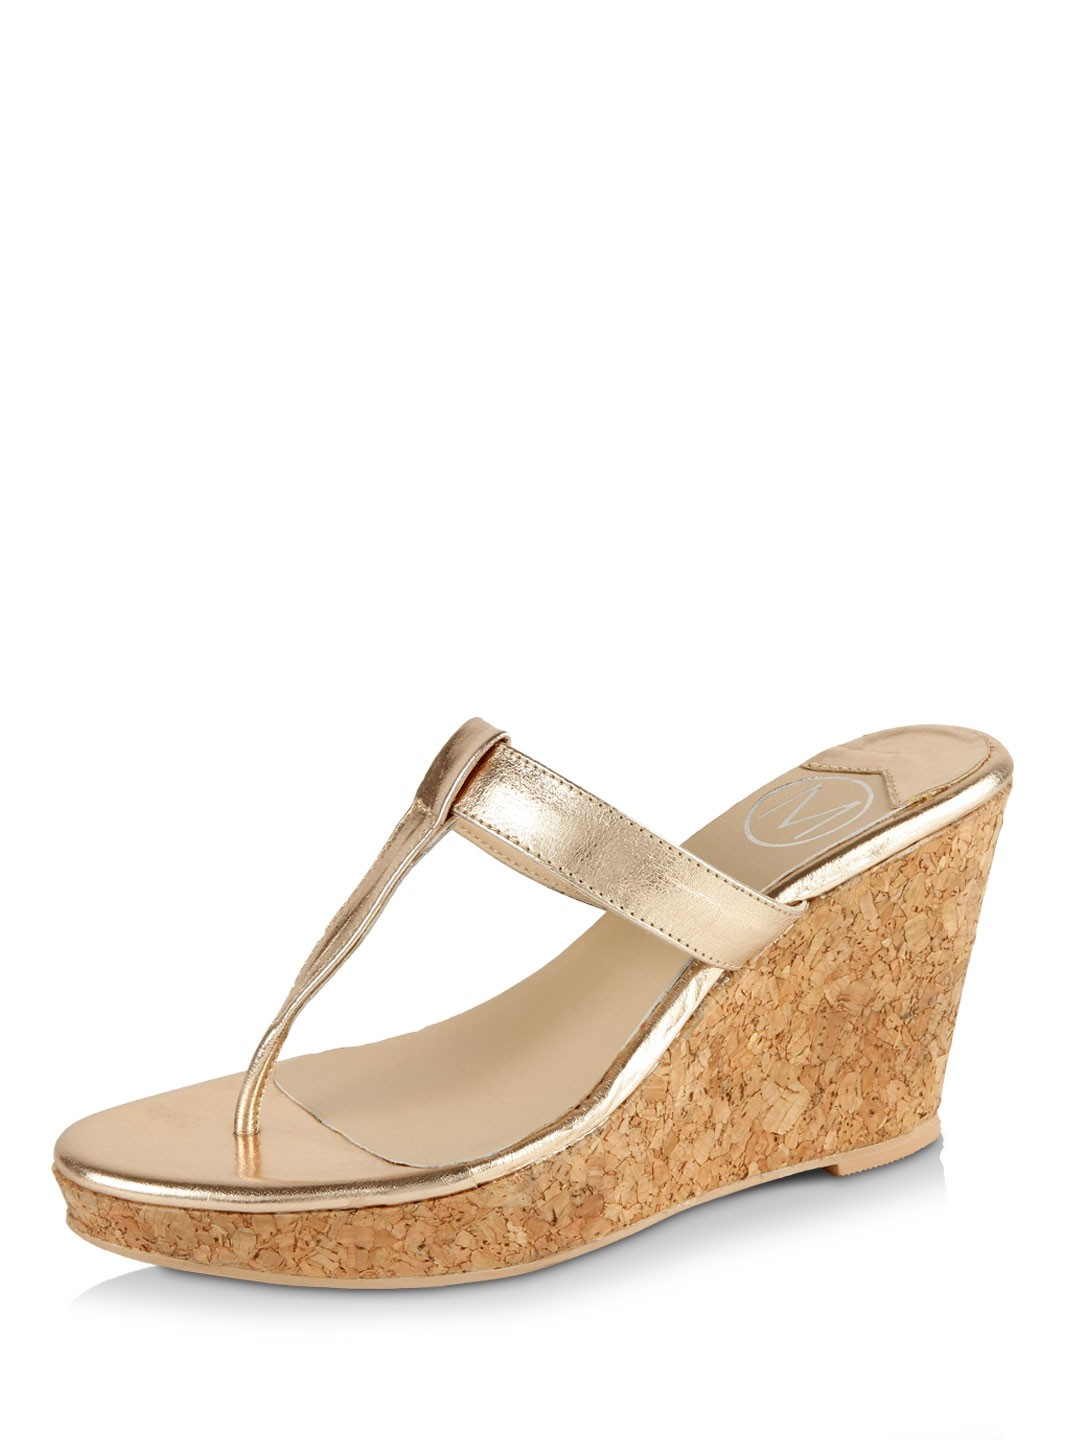 Looking great and fabulous is one of women's dreams when going out with friends, having a walk in the park or going shopping. In this place you can look fabulous and great everyday with your casual or chic attires with our extraordinary wedge shoes for women.